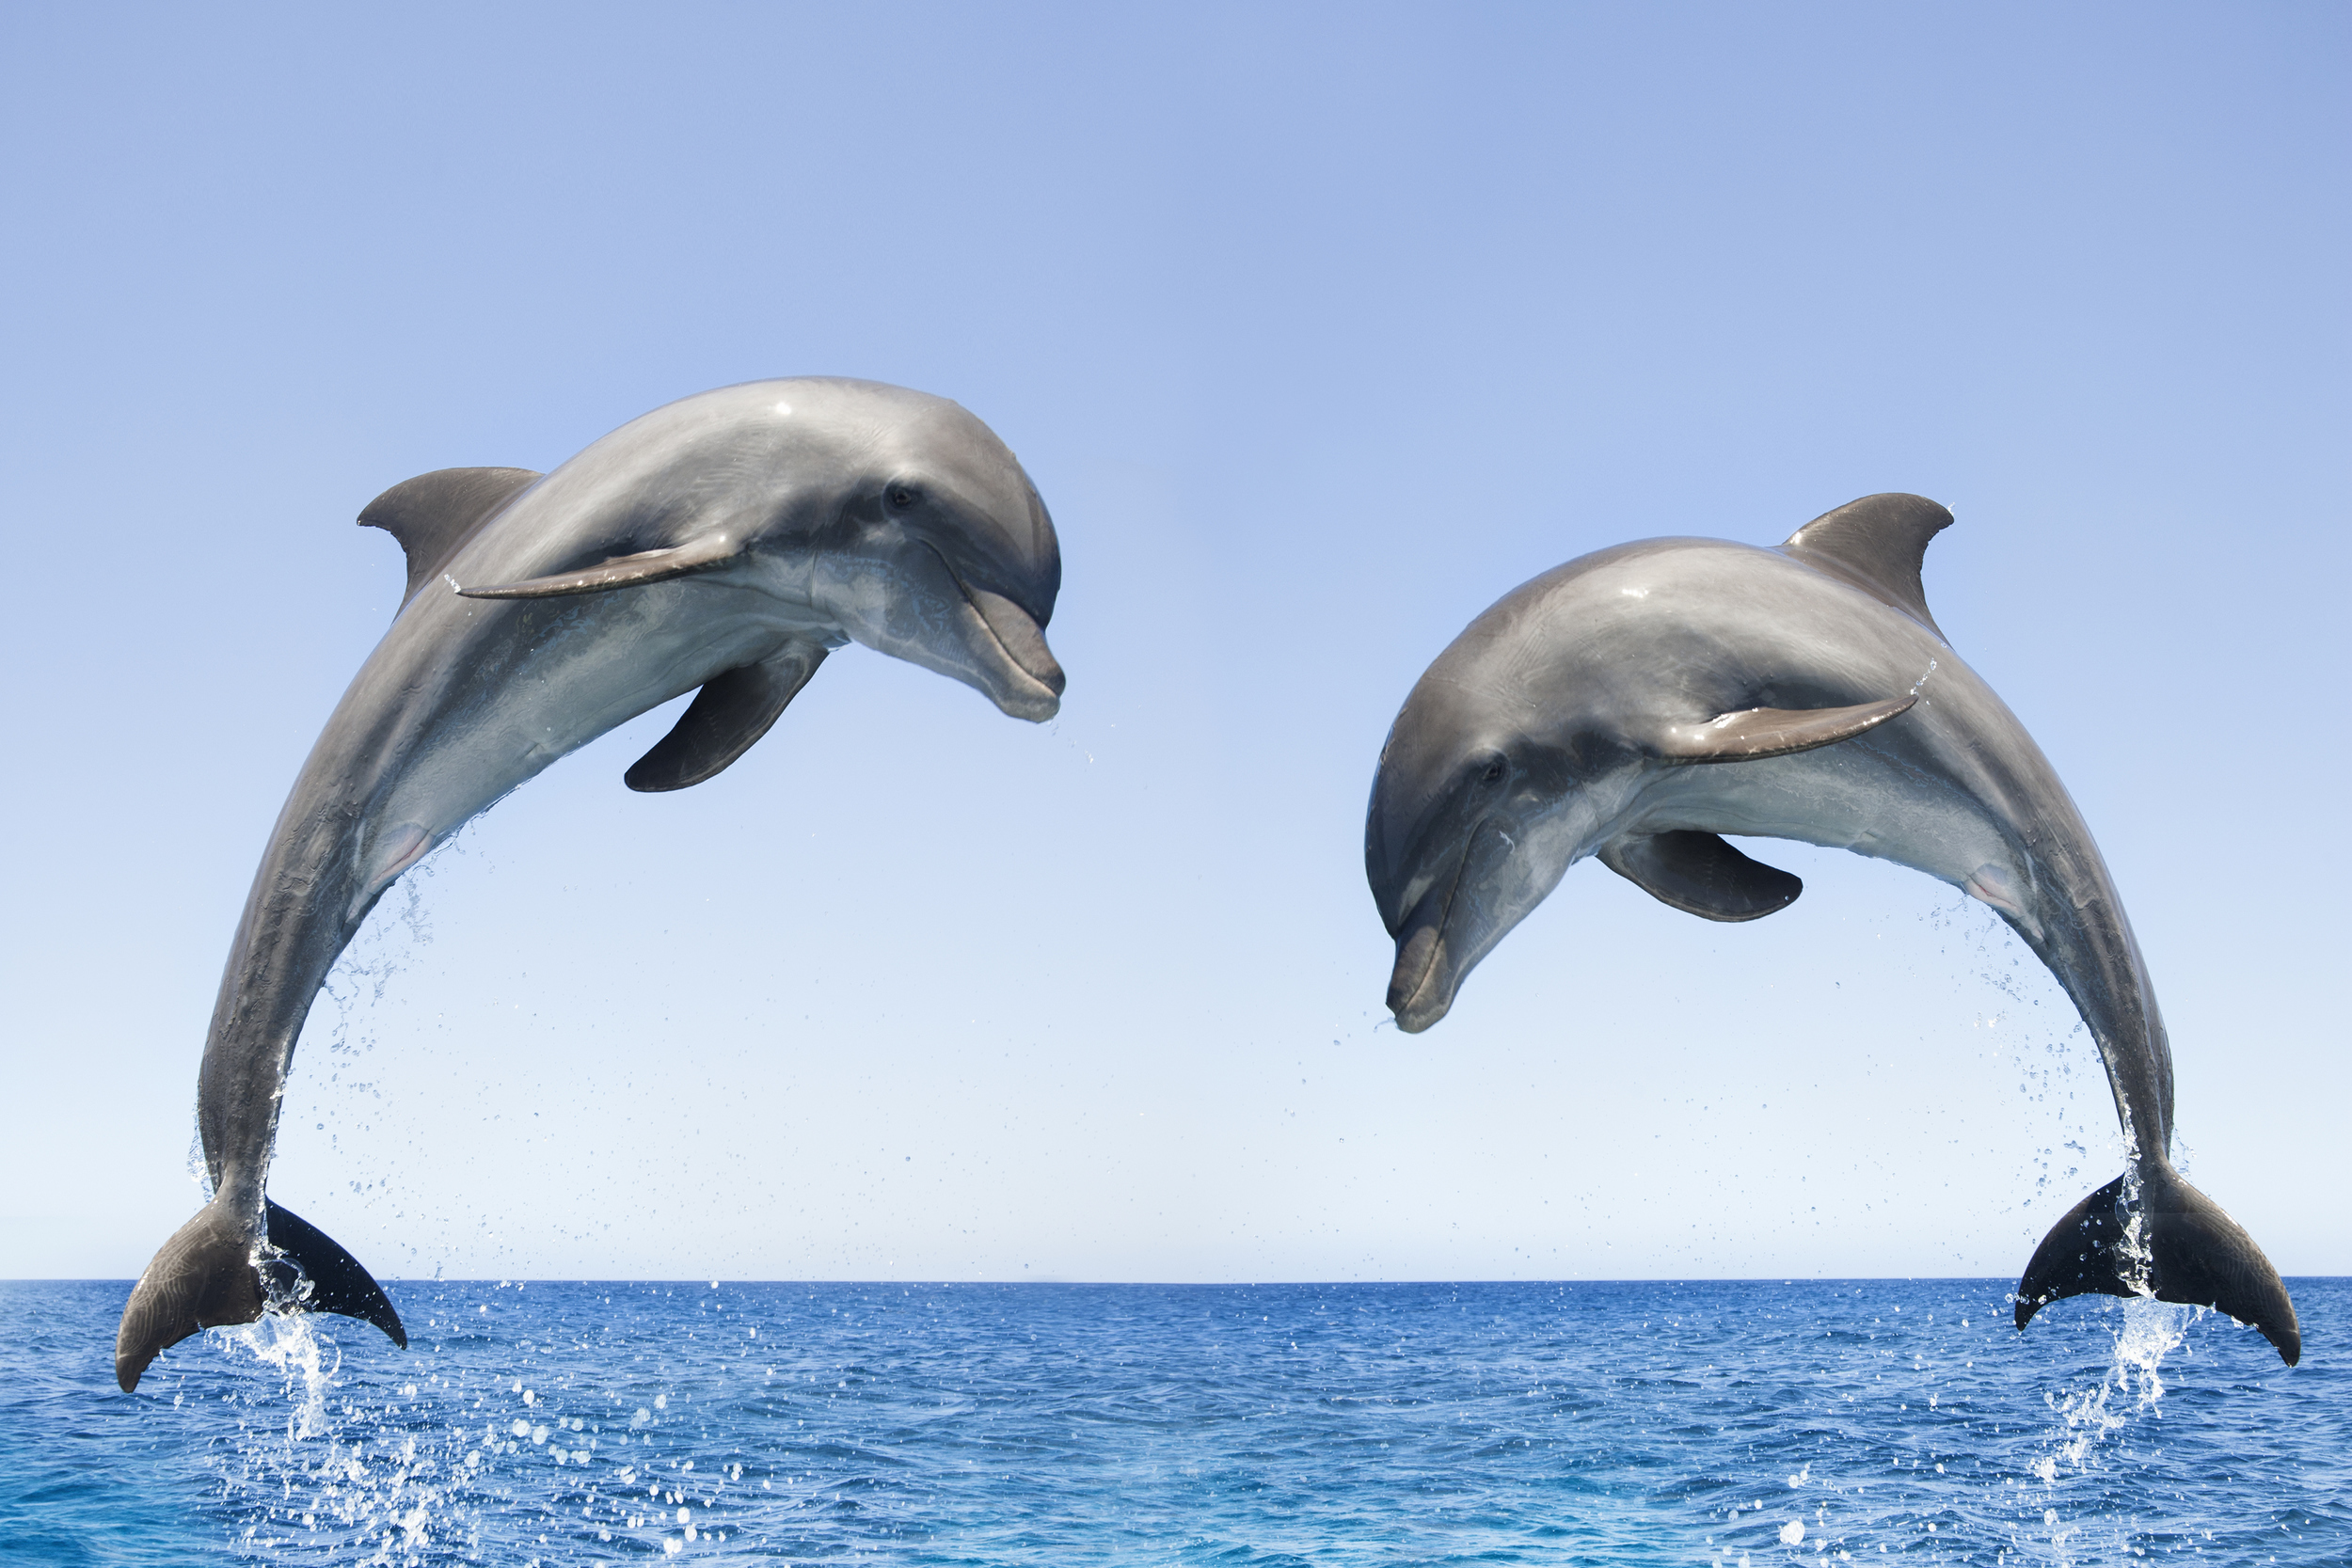 Dolphins communicate like humans see how